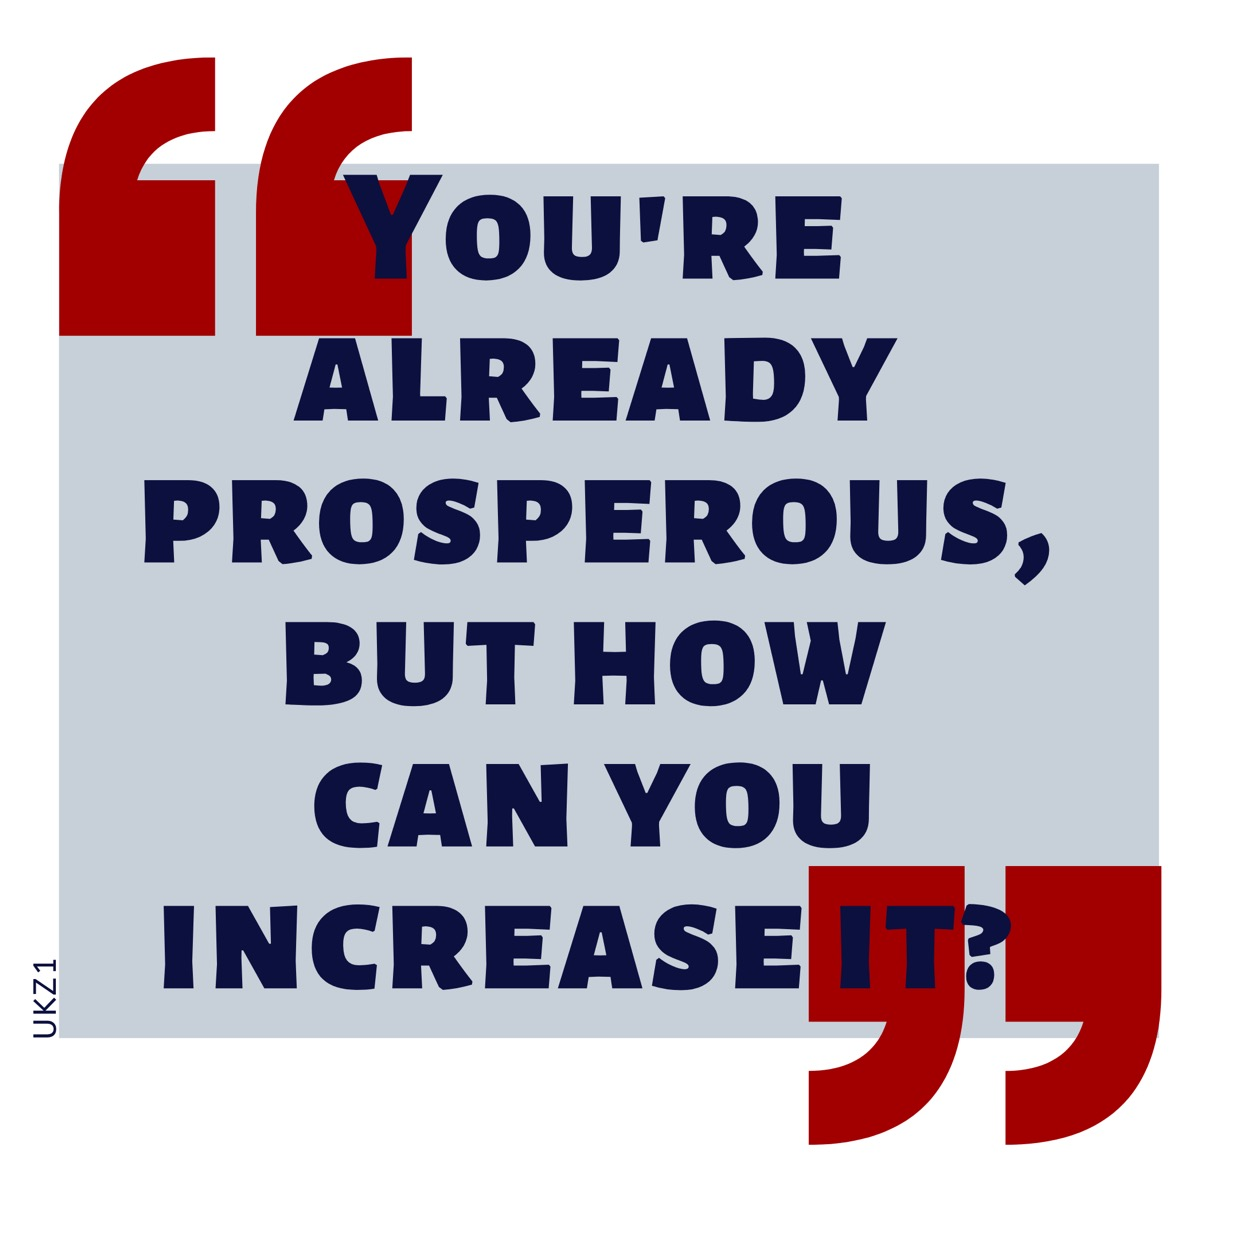 'You're already prosperous, but how